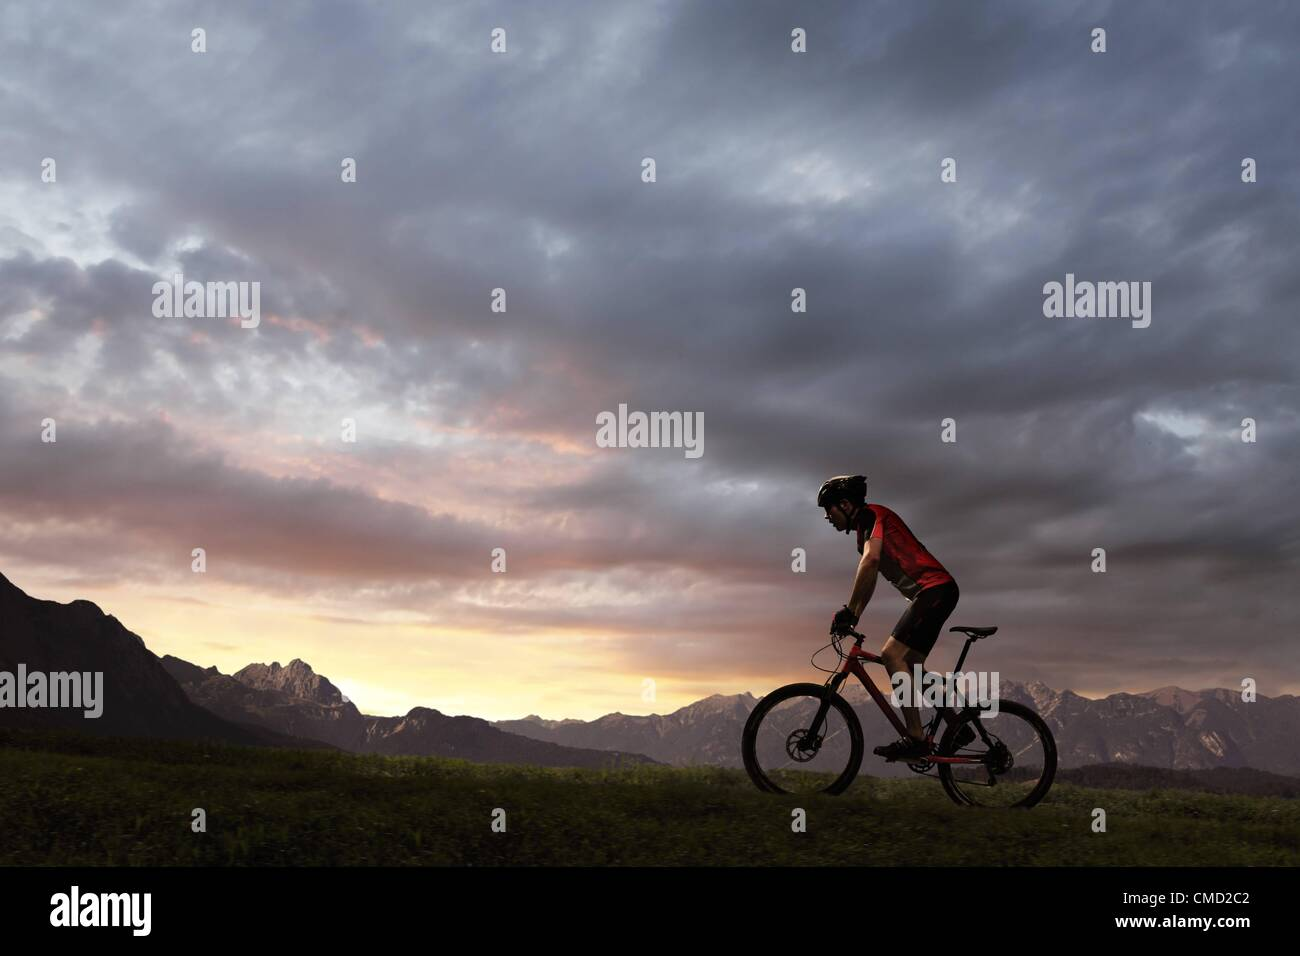 08.11.2011. Germany. Model released picture of a cyclist riding into the setting sun. - Stock Image